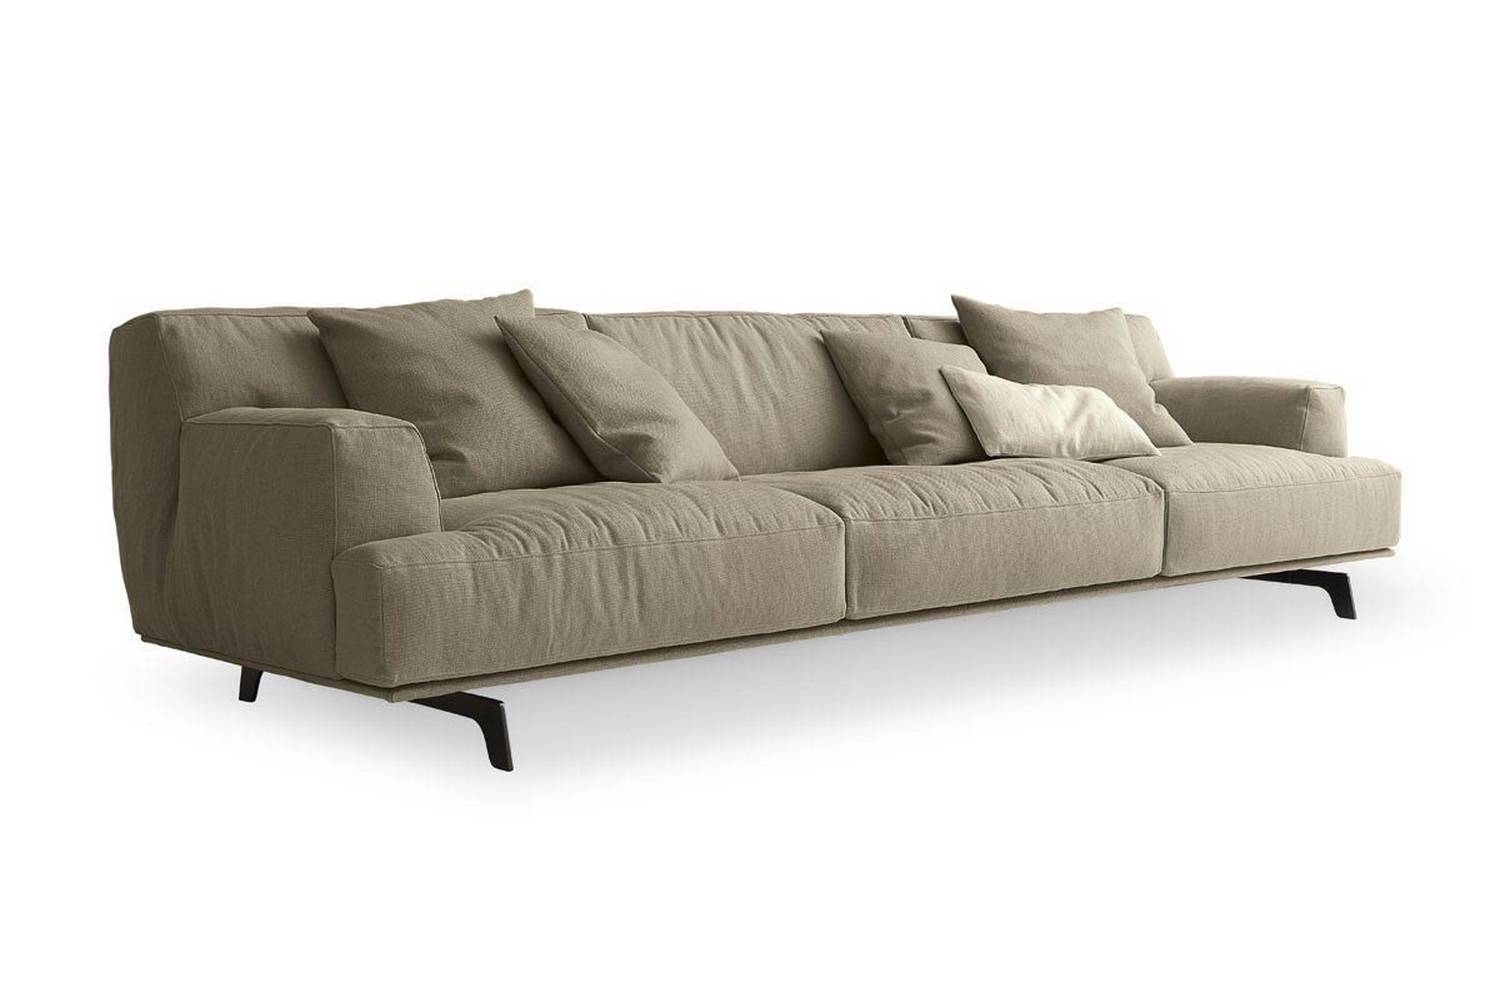 j m paquet sofa sicily leather effect clic clac bed review tribeca by massaud for poliform